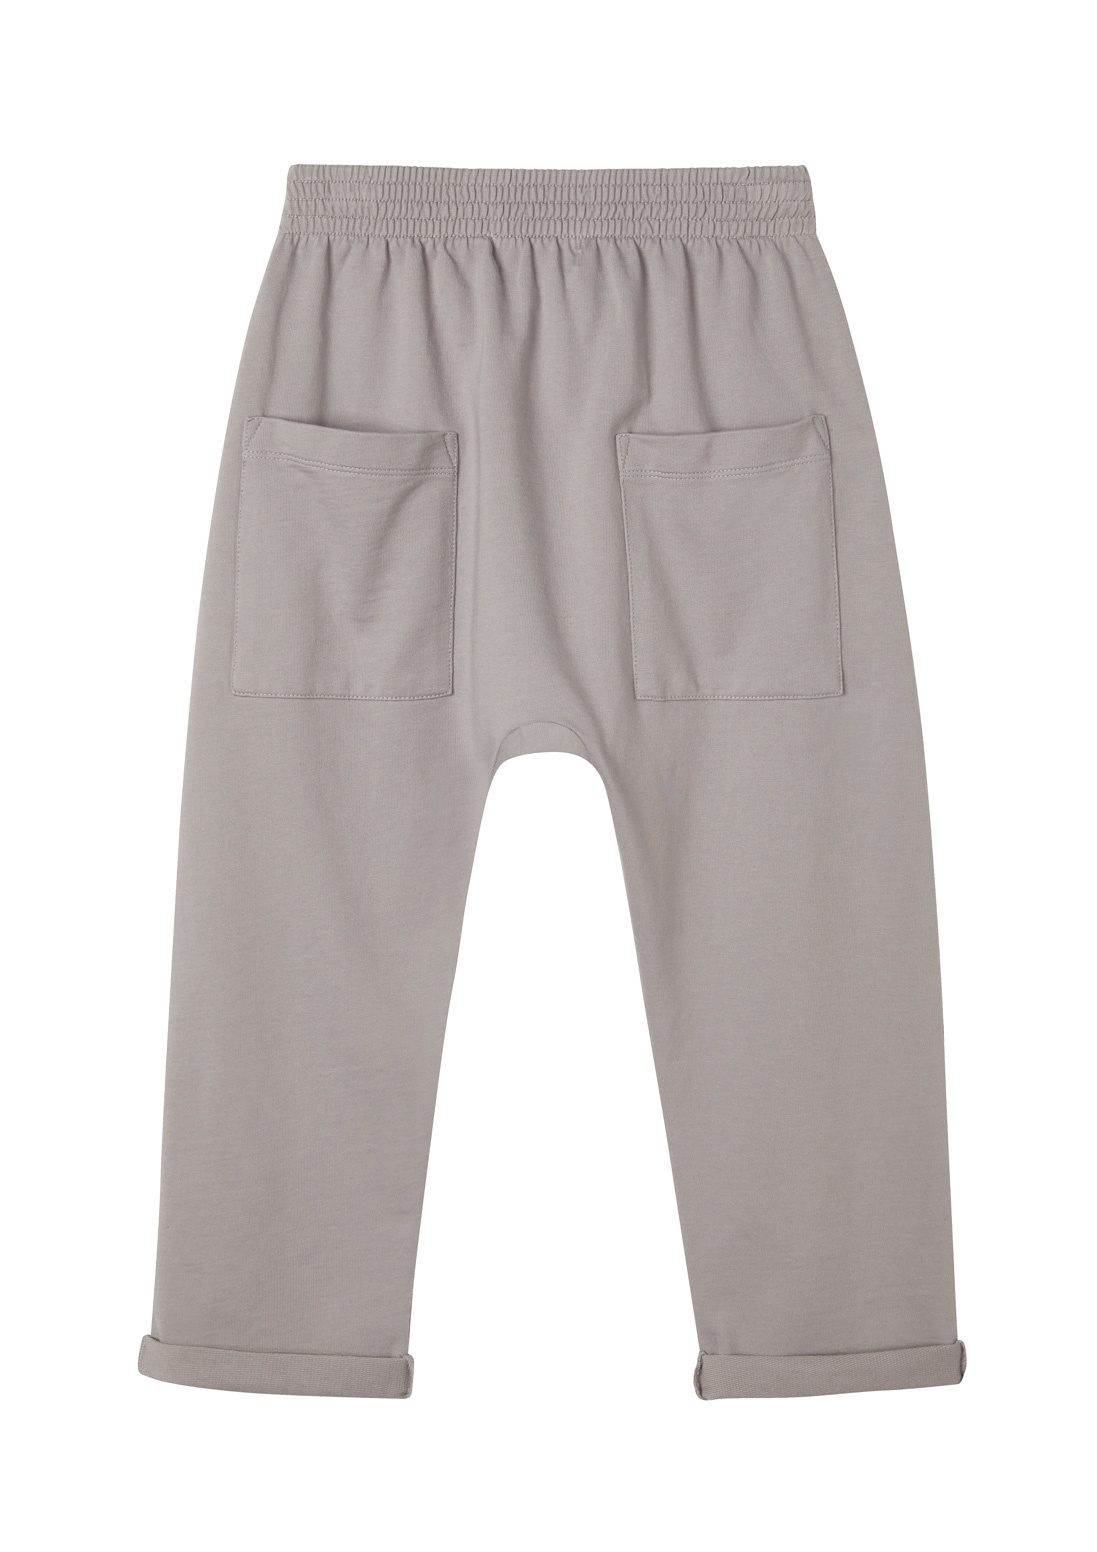 Slouchy sweatpant - Silver Filigree-3